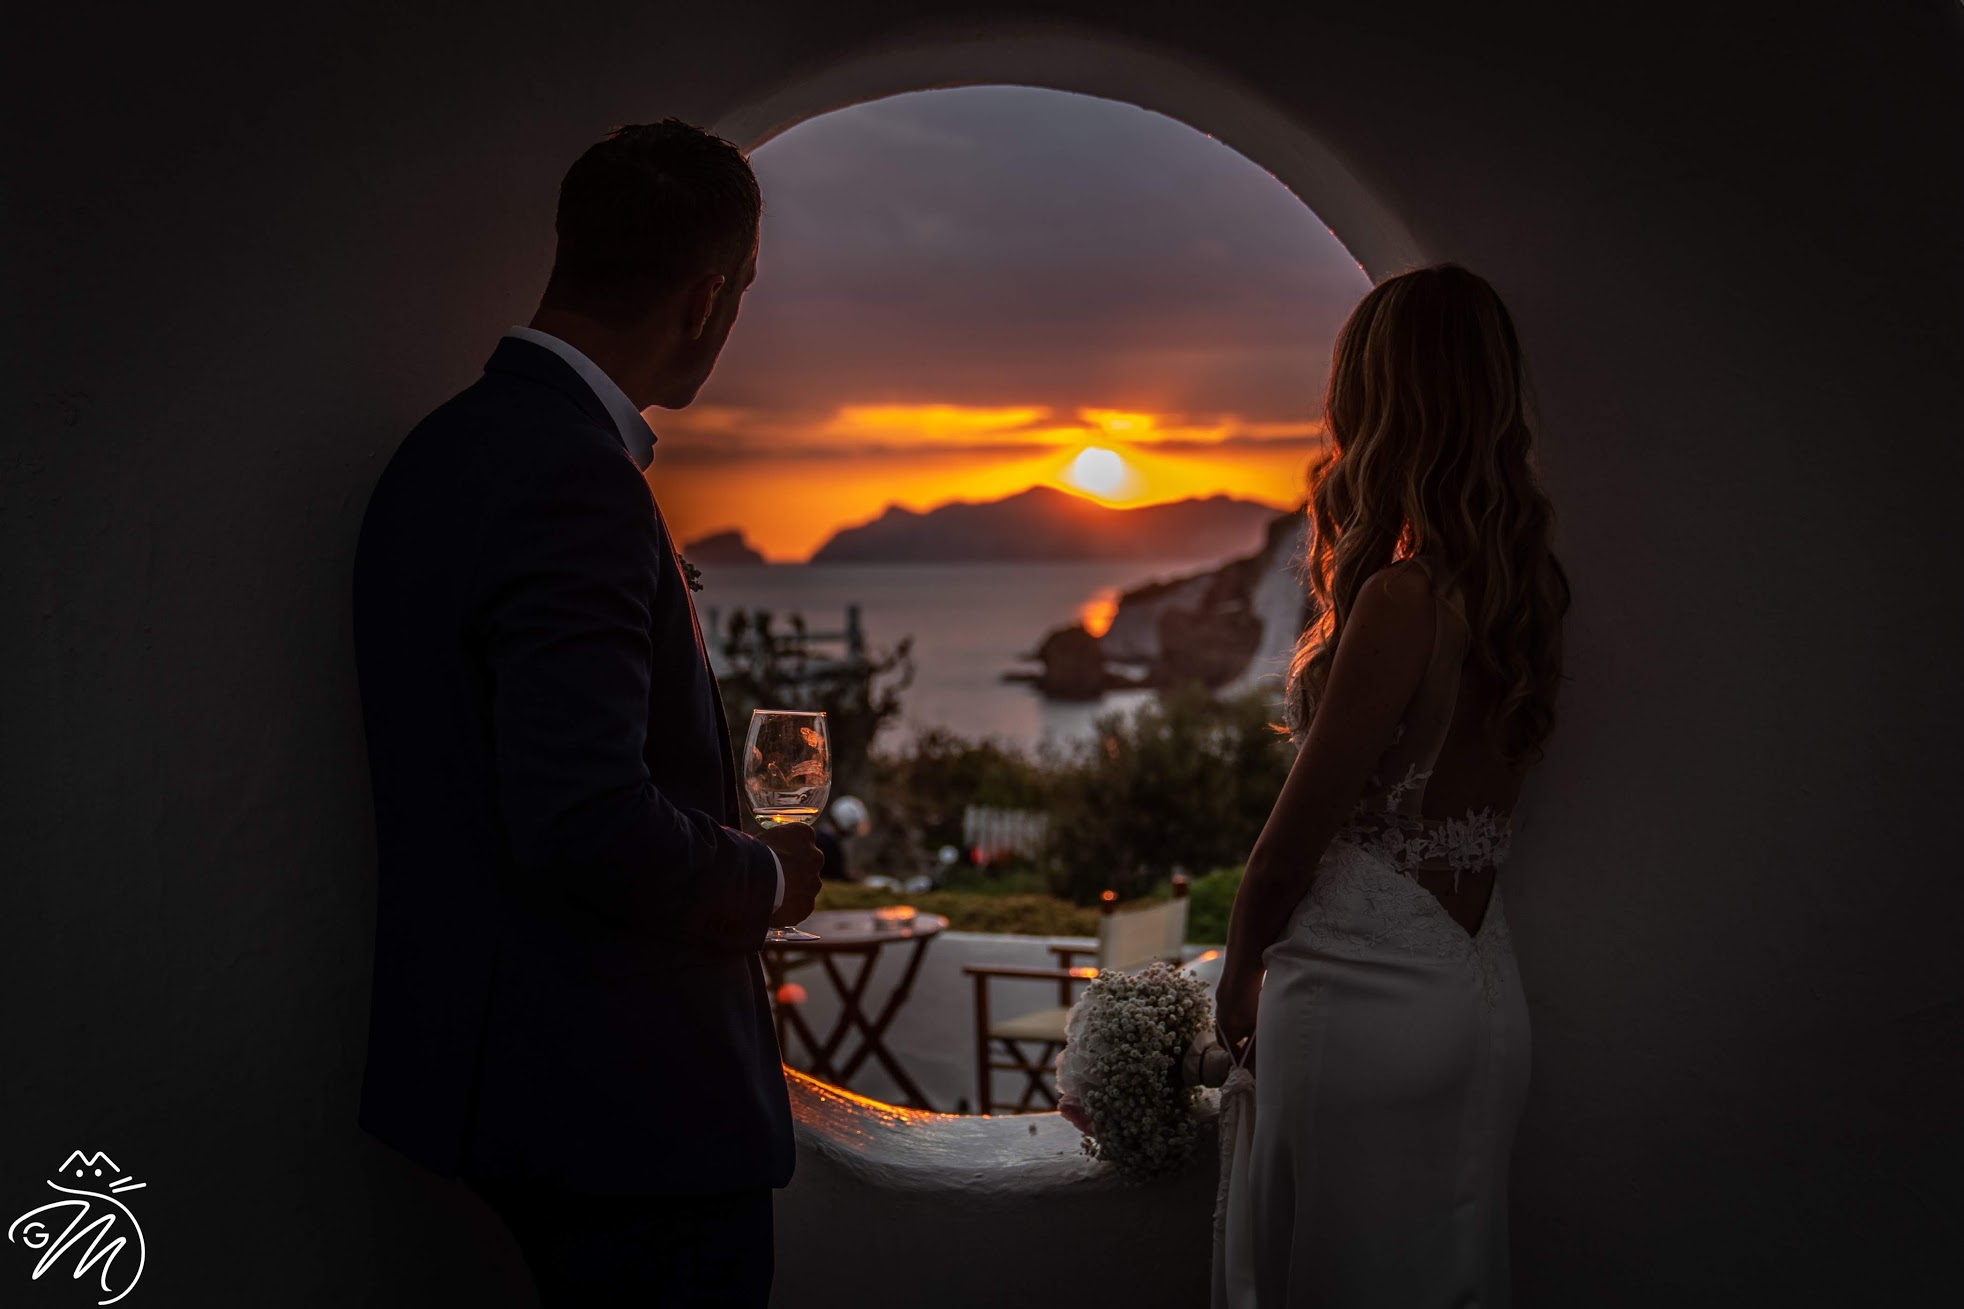 WEDDING MATRIMONIO IN PONZA ISOLA MARTINA E NICOLO by GIROLAMOMONTELEONE 20190601201537